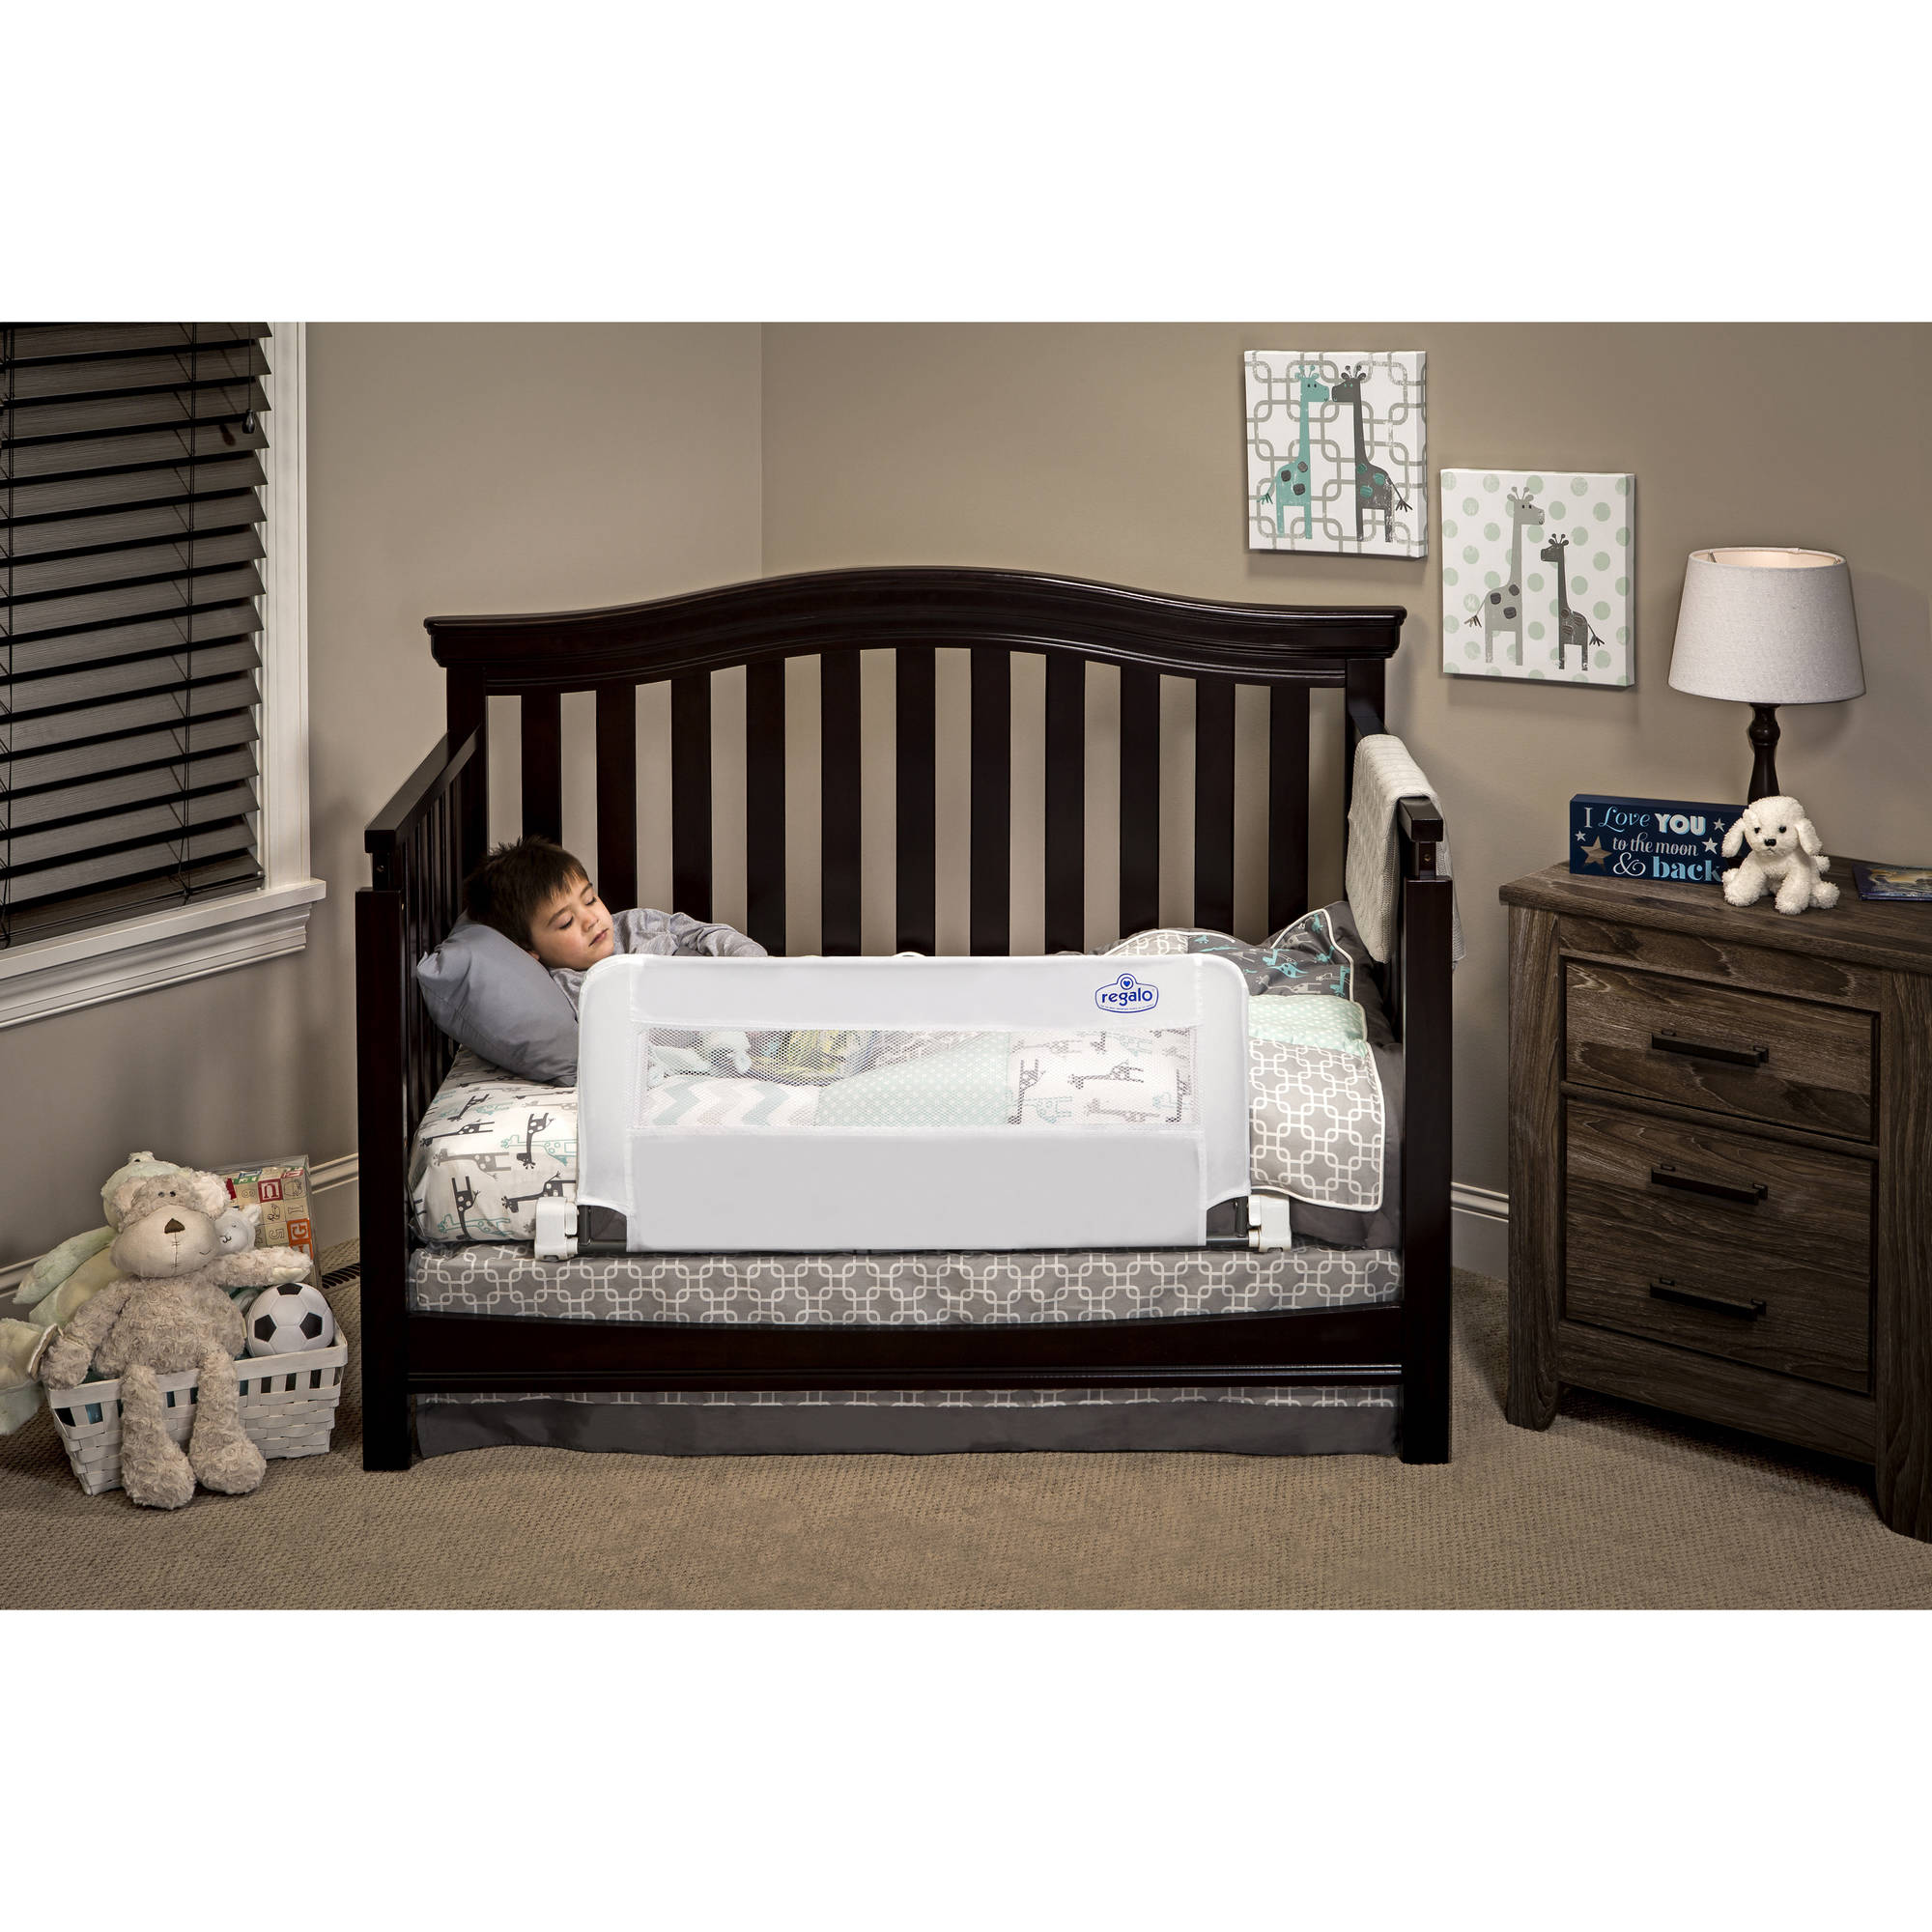 Baby bed at walmart - Regalo Swing Down Convertible Crib Rail 33 Inch Long And 16 Inch Tall Walmart Com